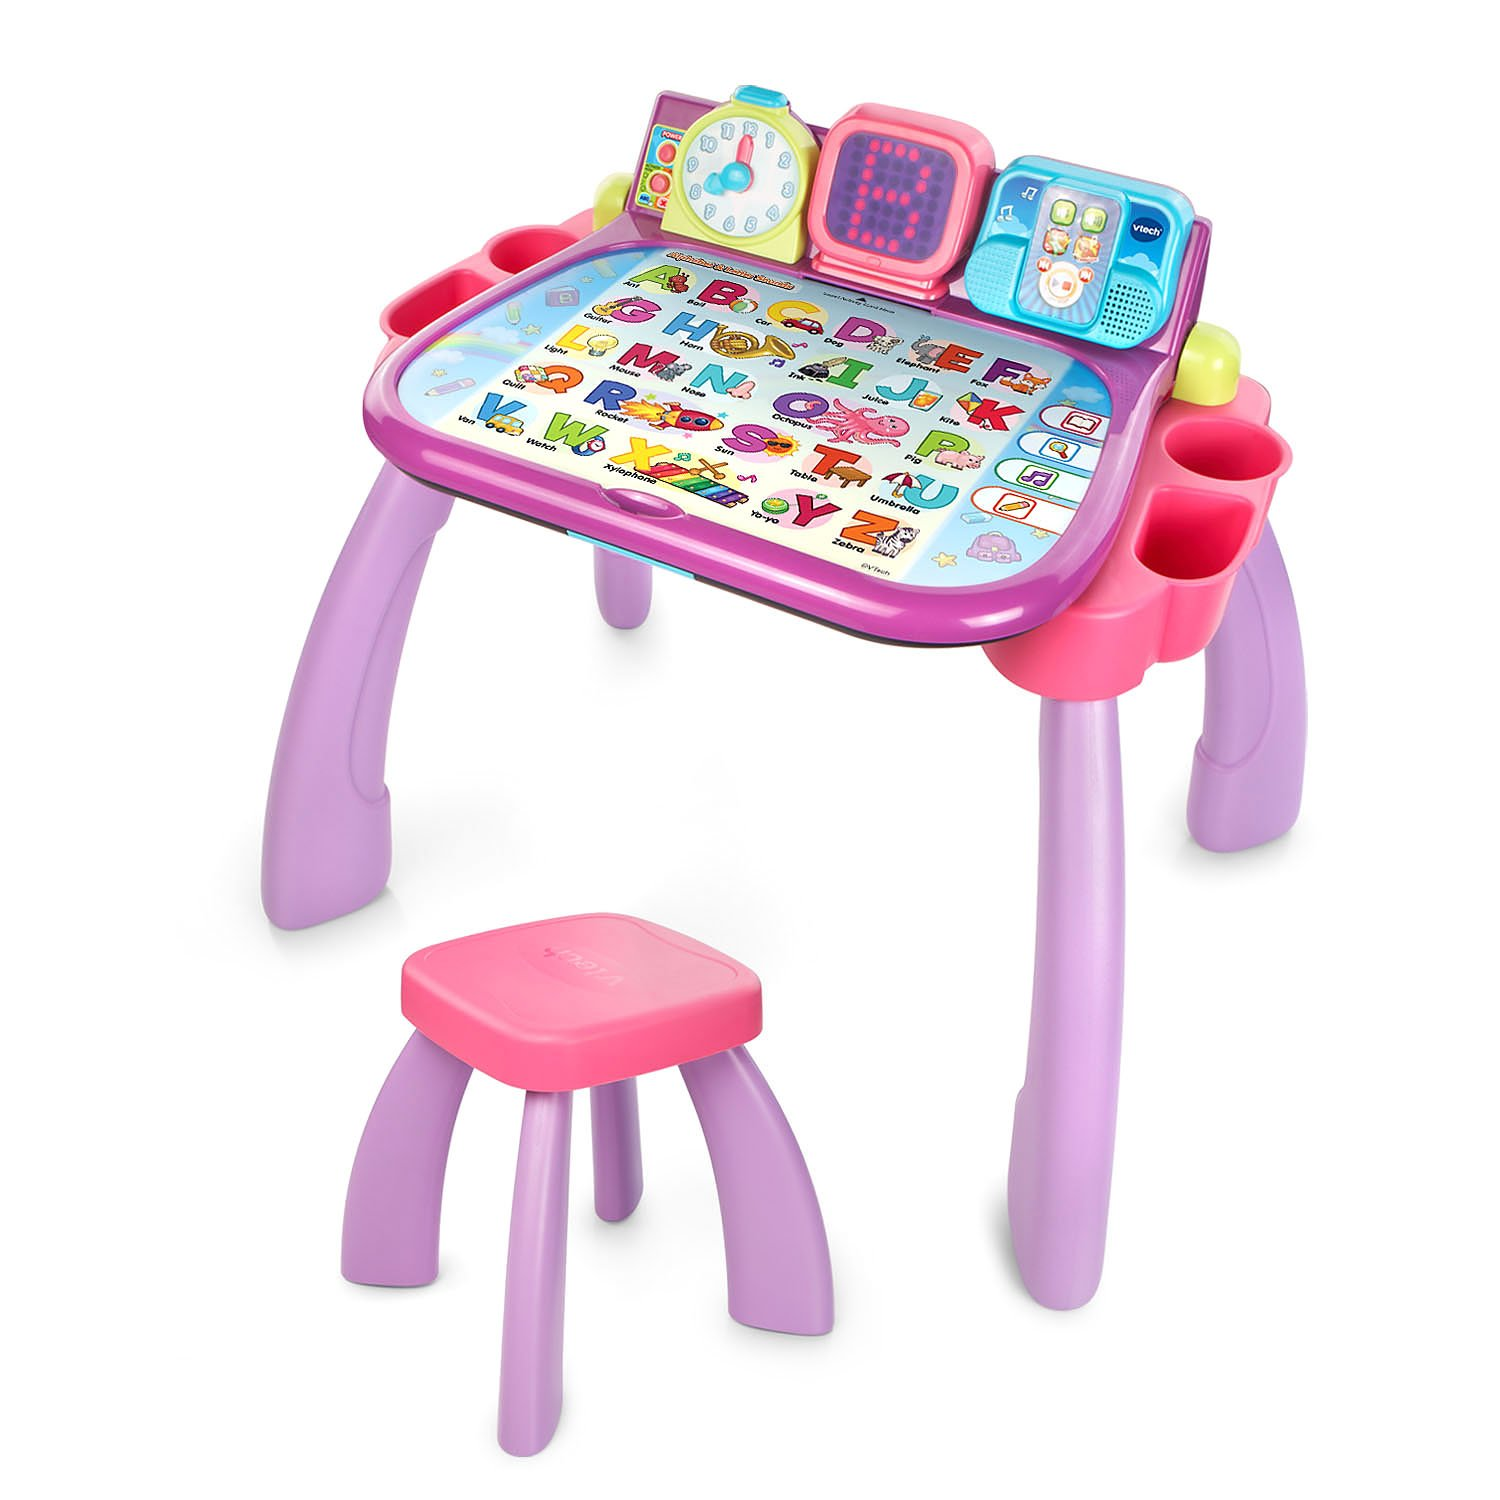 VTech Touch and Learn Activity Desk, Purple by VTech